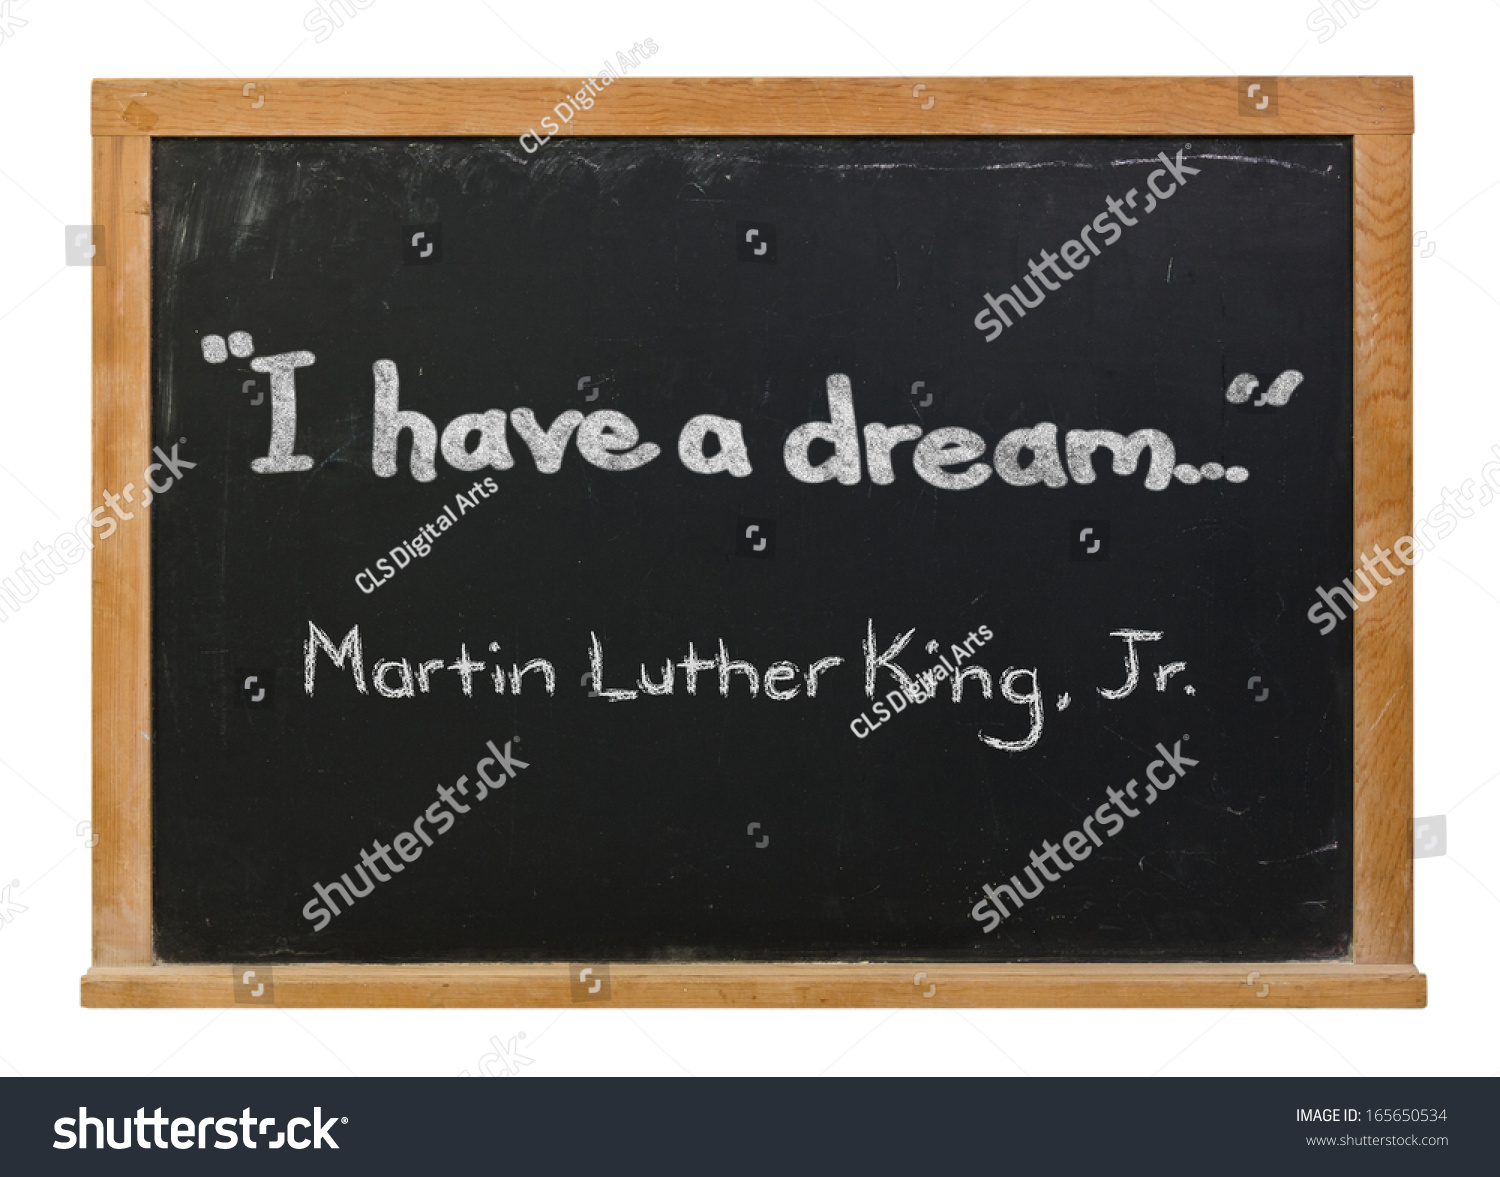 luther king jr i have a dream speech essay martin luther king jr i have a dream speech essay